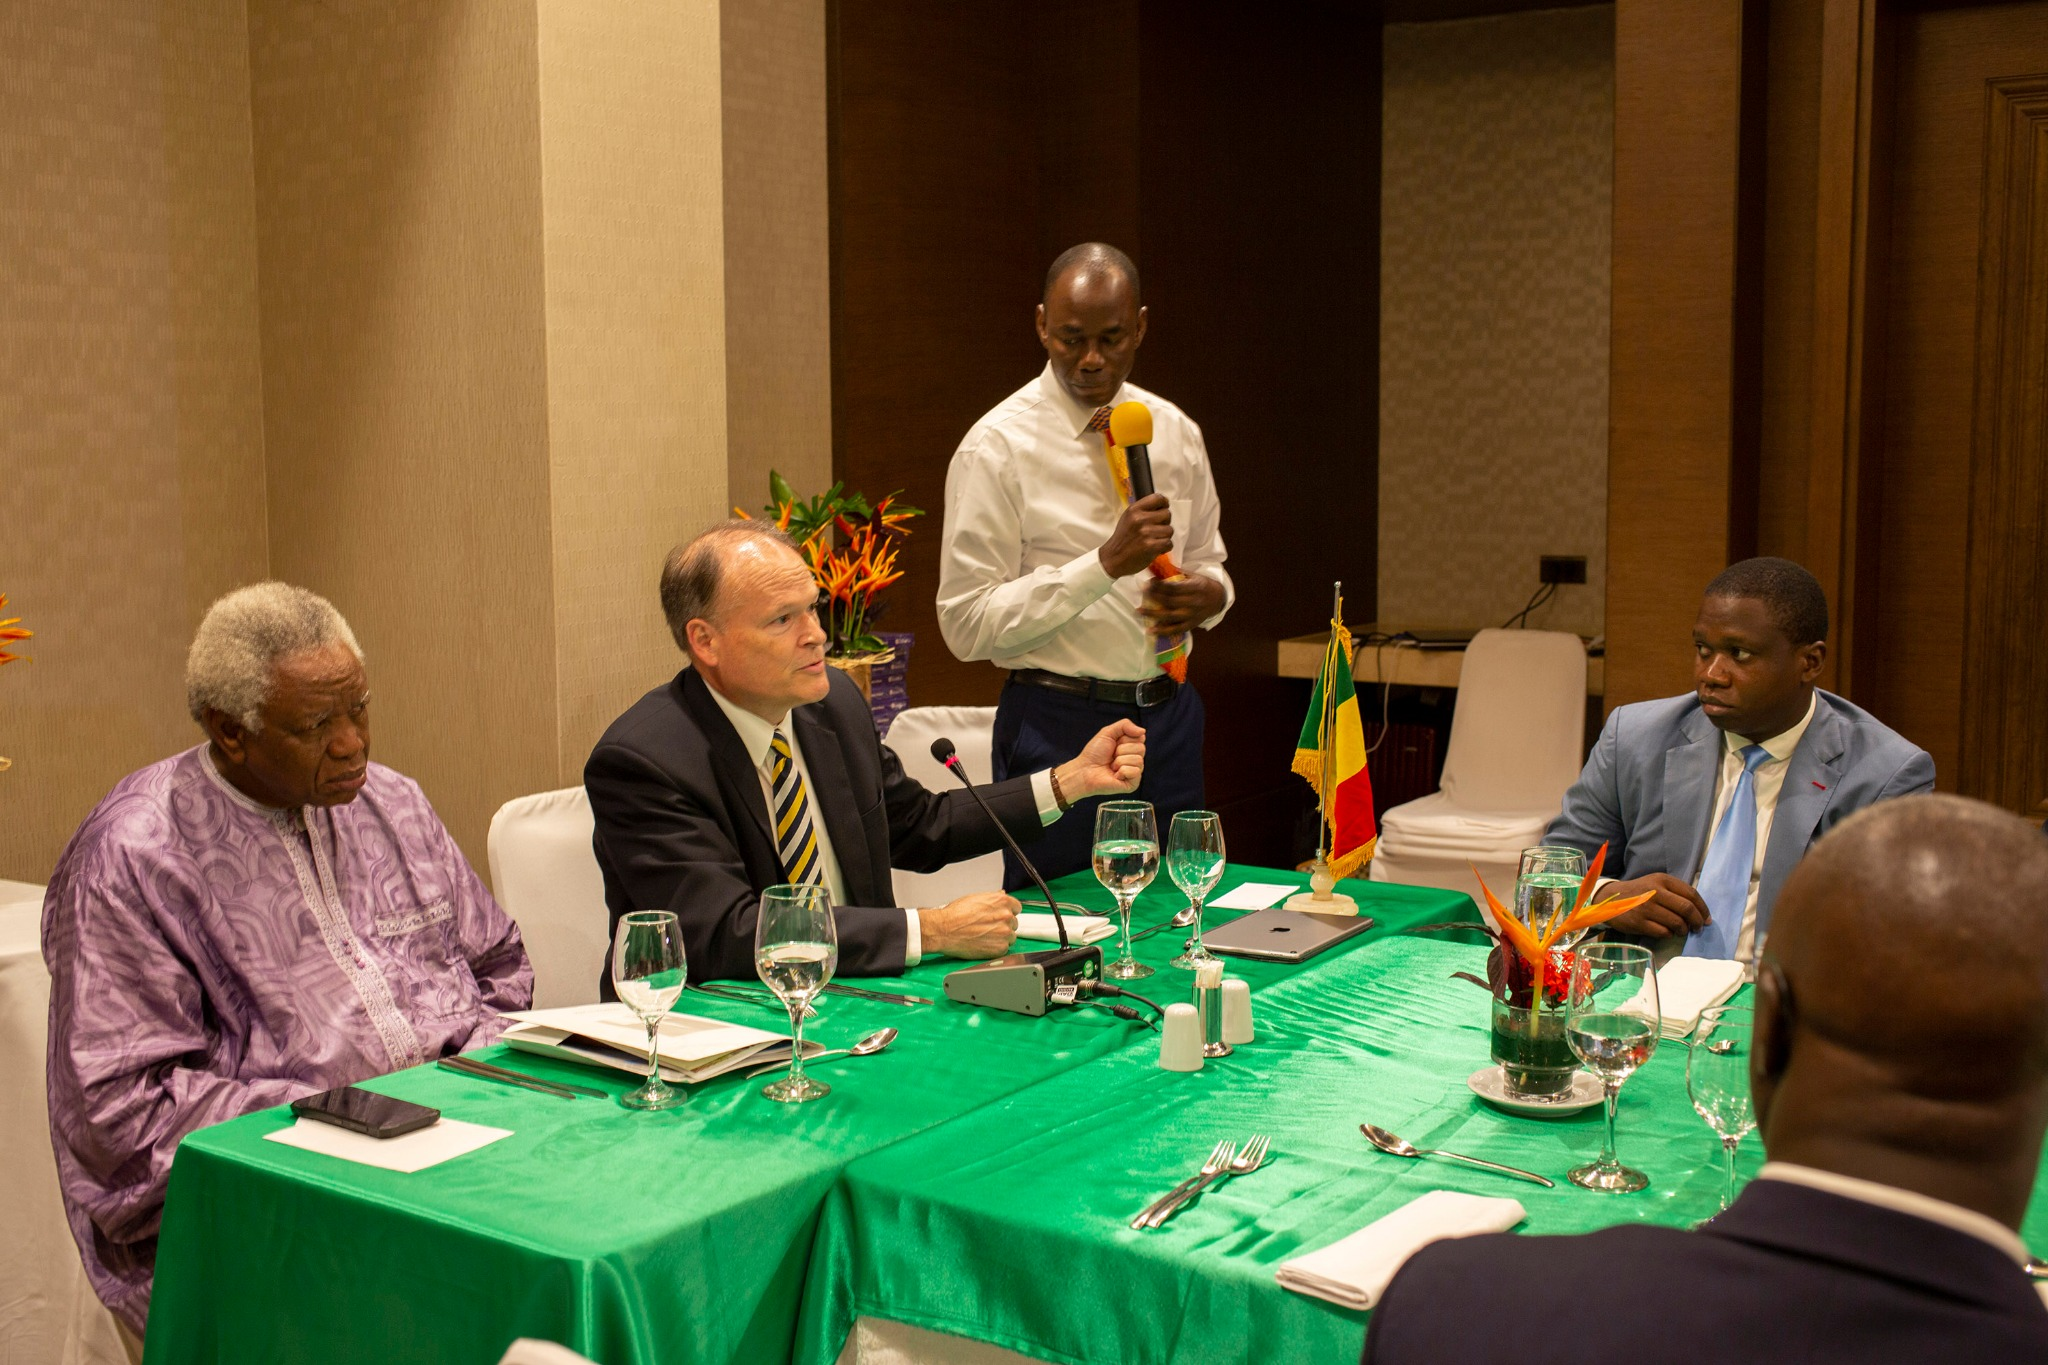 Elder Marcus B. Nash, General Authority Seventy and president of the Africa West Area, participates with Daniel Thera (left), Minister of Religious Activities, during the recognition of the Church meeting on Sept. 12, 2019, in Bamako, Mali.